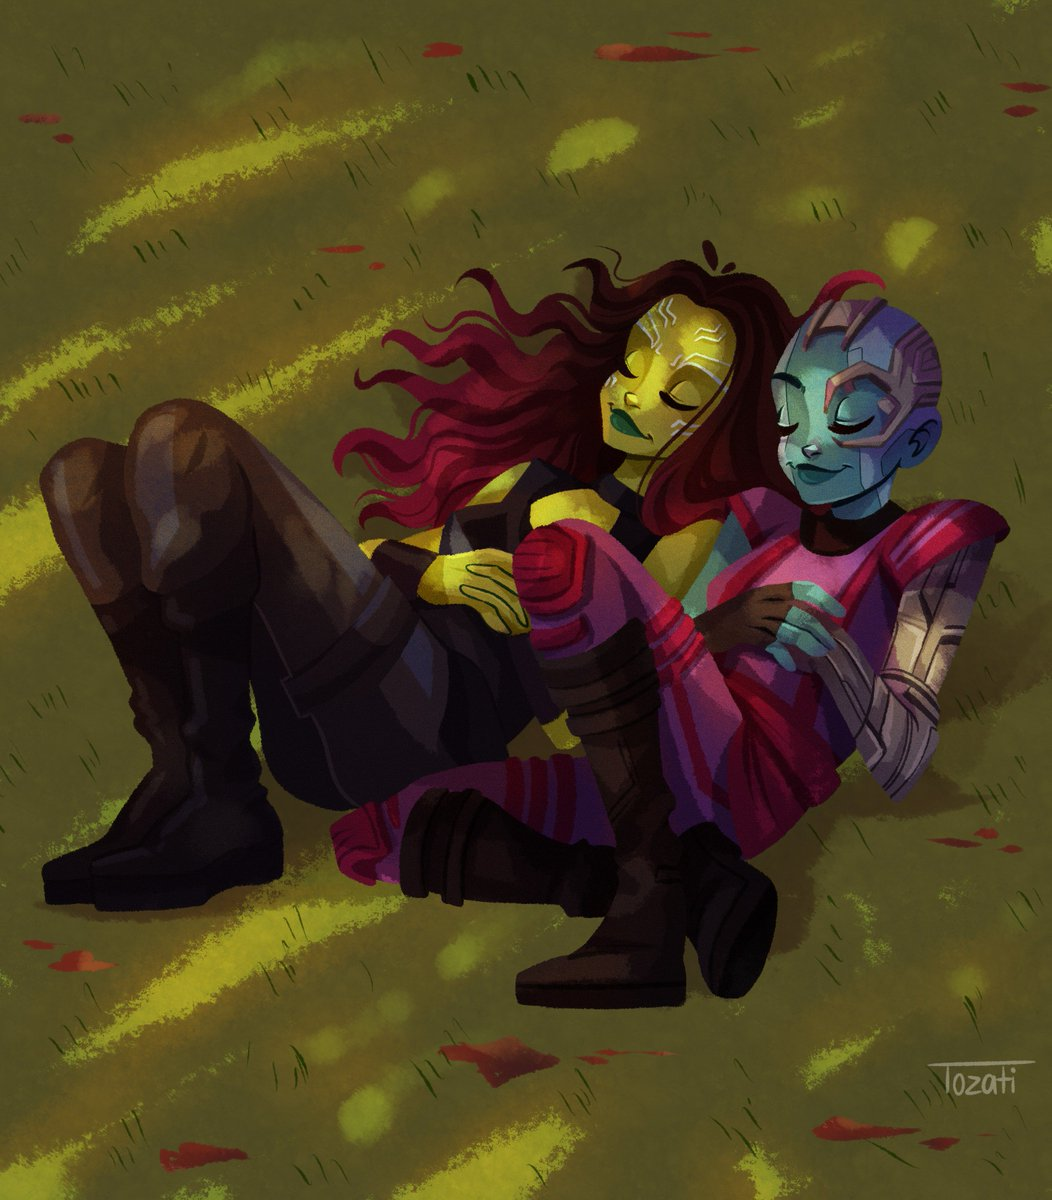 &quot;you will always be my sister.&quot;  #GuardiansoftheGalaxy  #Gamora  #marvel #fanart<br>http://pic.twitter.com/Wcz7SptlvA